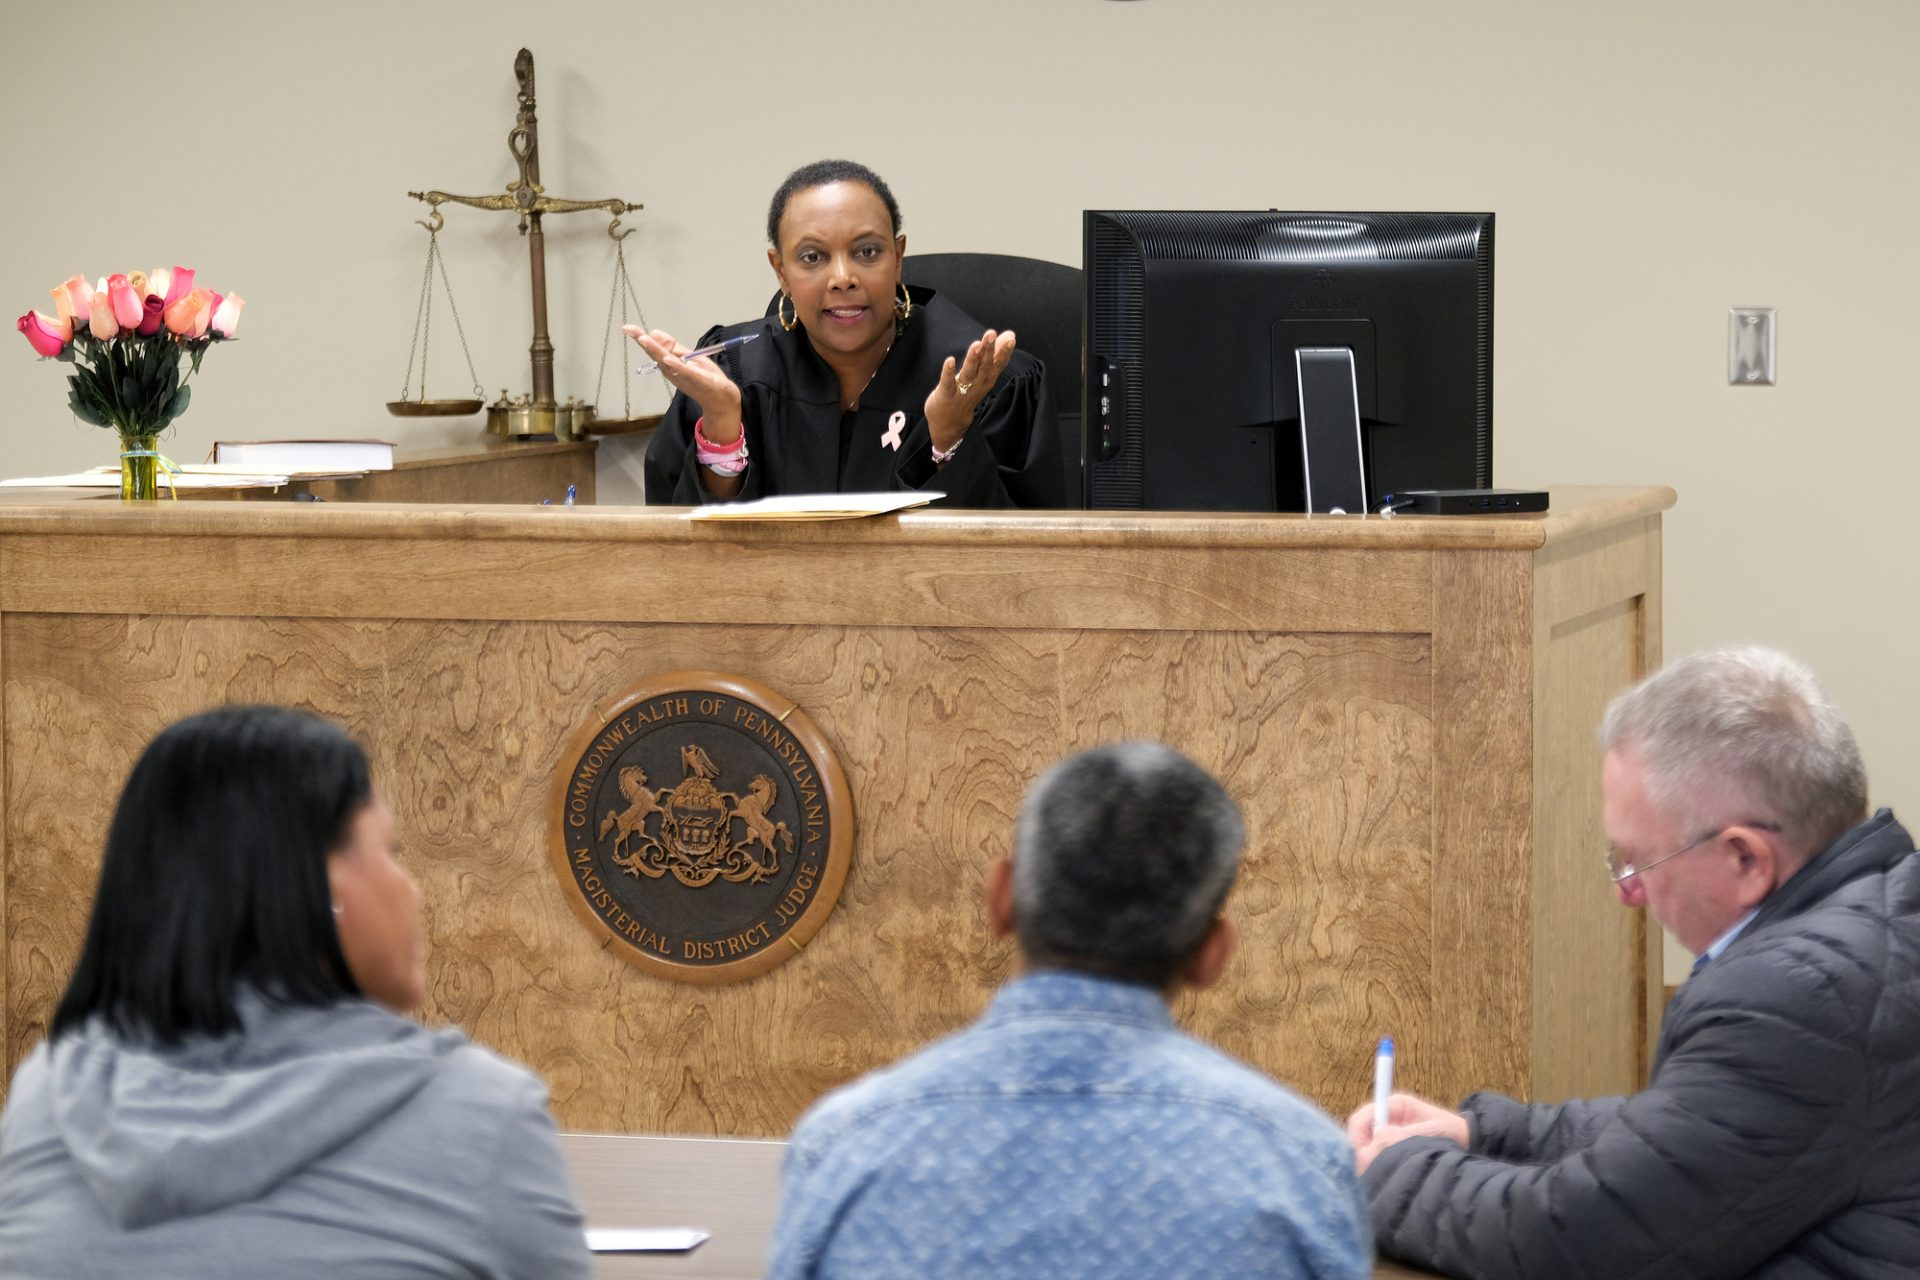 Judge Tonya Butler presides over a landlord-tenant case in Reading.